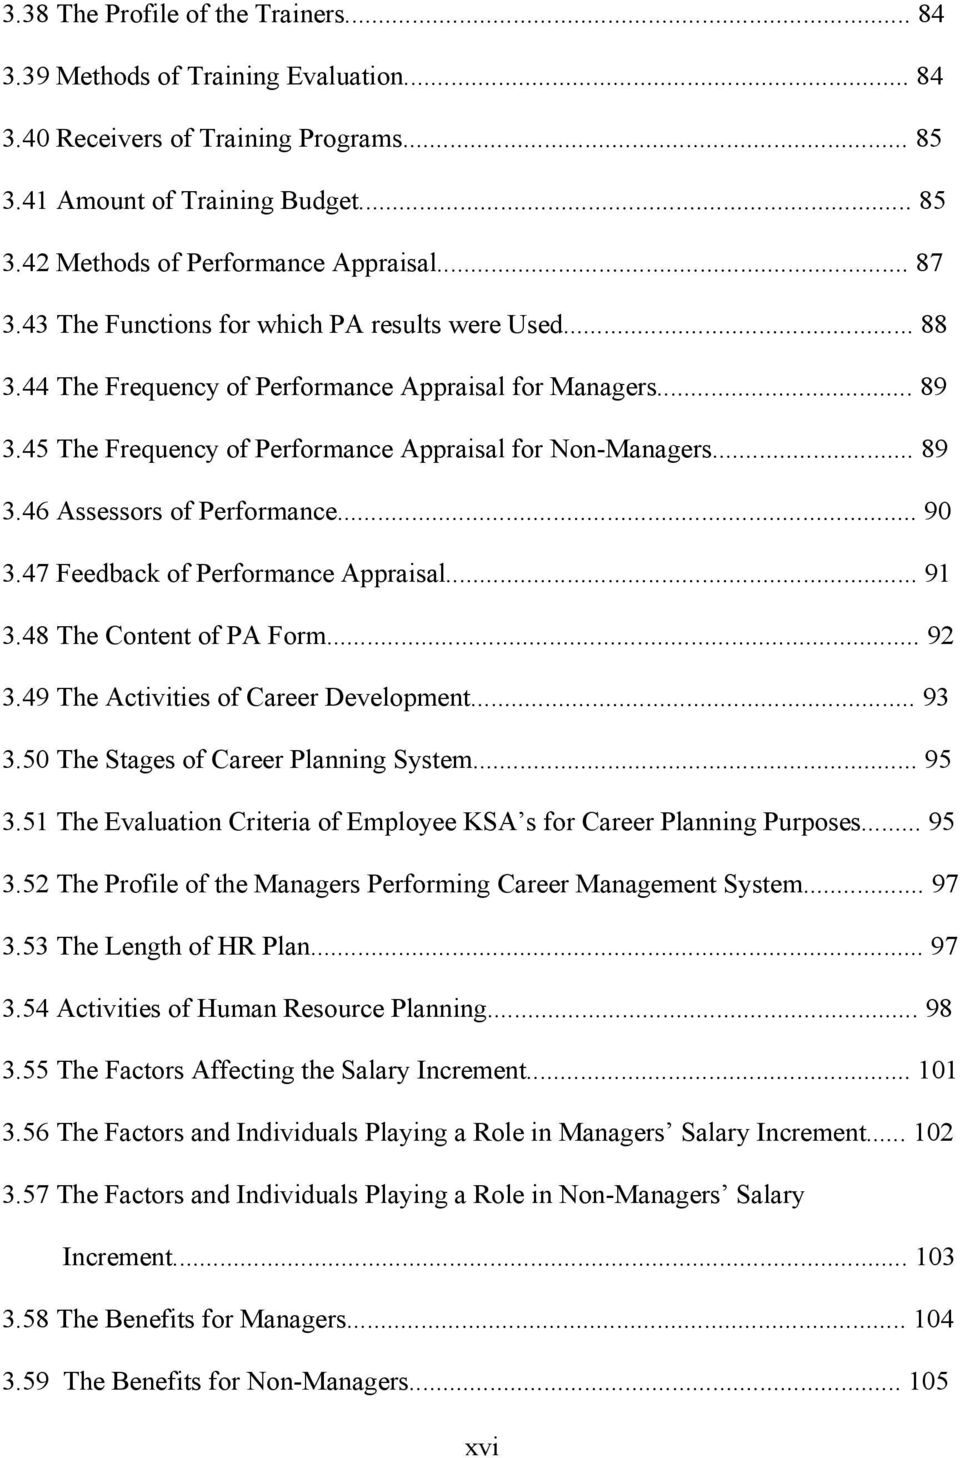 .. 90 3.47 Feedback of Performance Appraisal... 91 3.48 The Content of PA Form... 92 3.49 The Activities of Career Development... 93 3.50 The Stages of Career Planning System... 95 3.